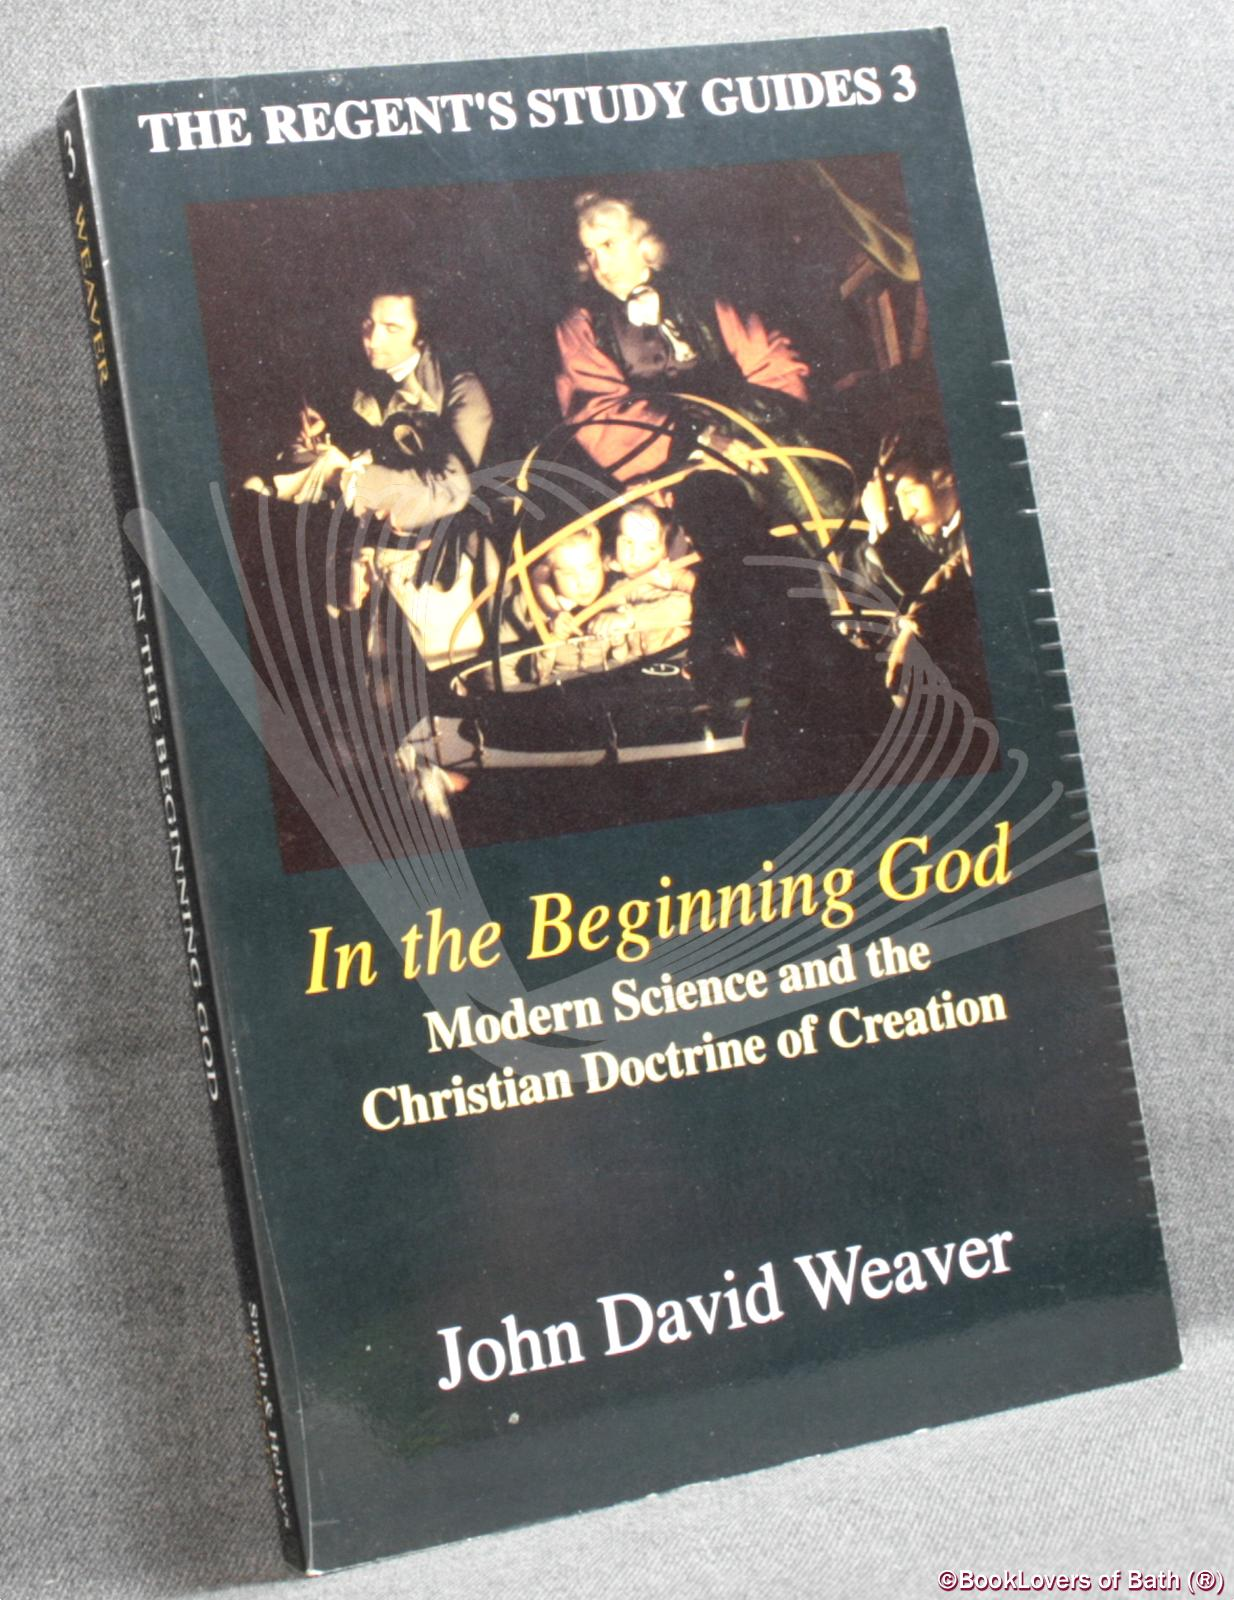 In the Beginning God: Modern Science and the Christian Doctrine of Creation - John David Weaver